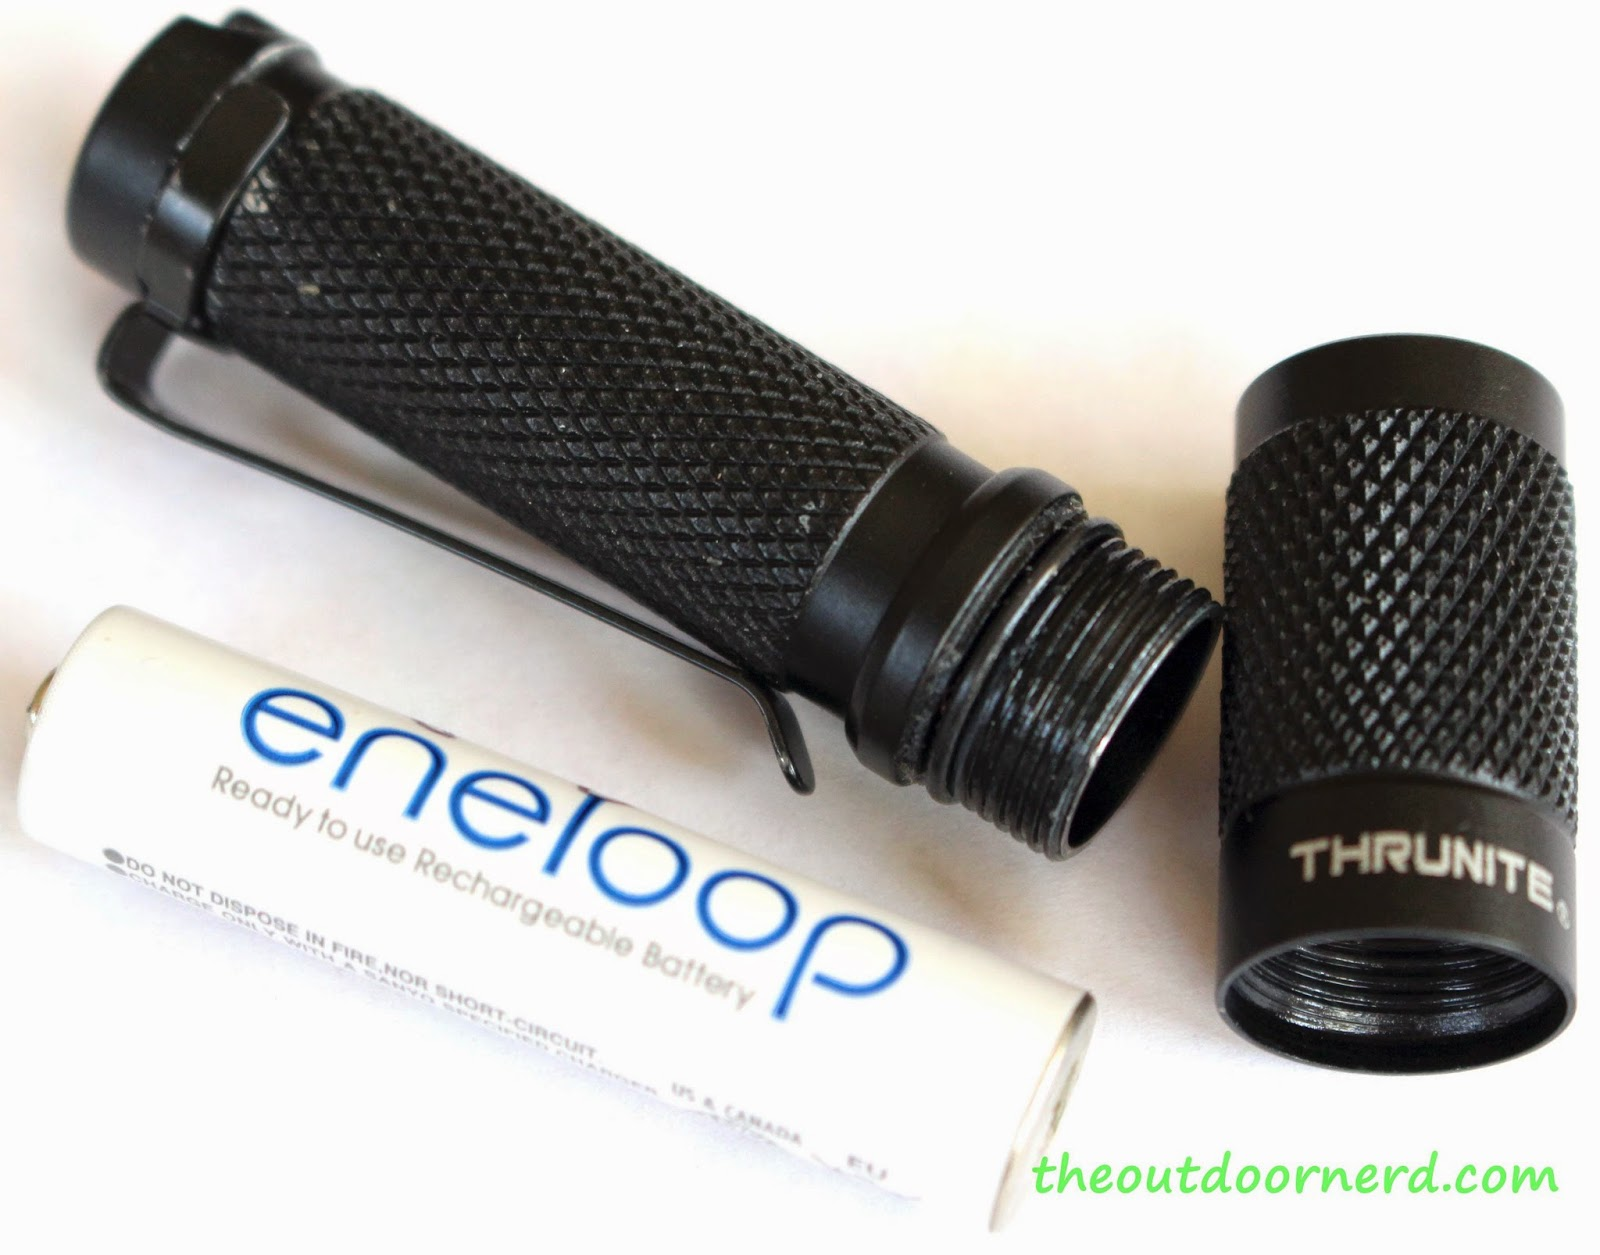 Thrunite Ti3 1xAAA EDC Flashlight: Product View 8